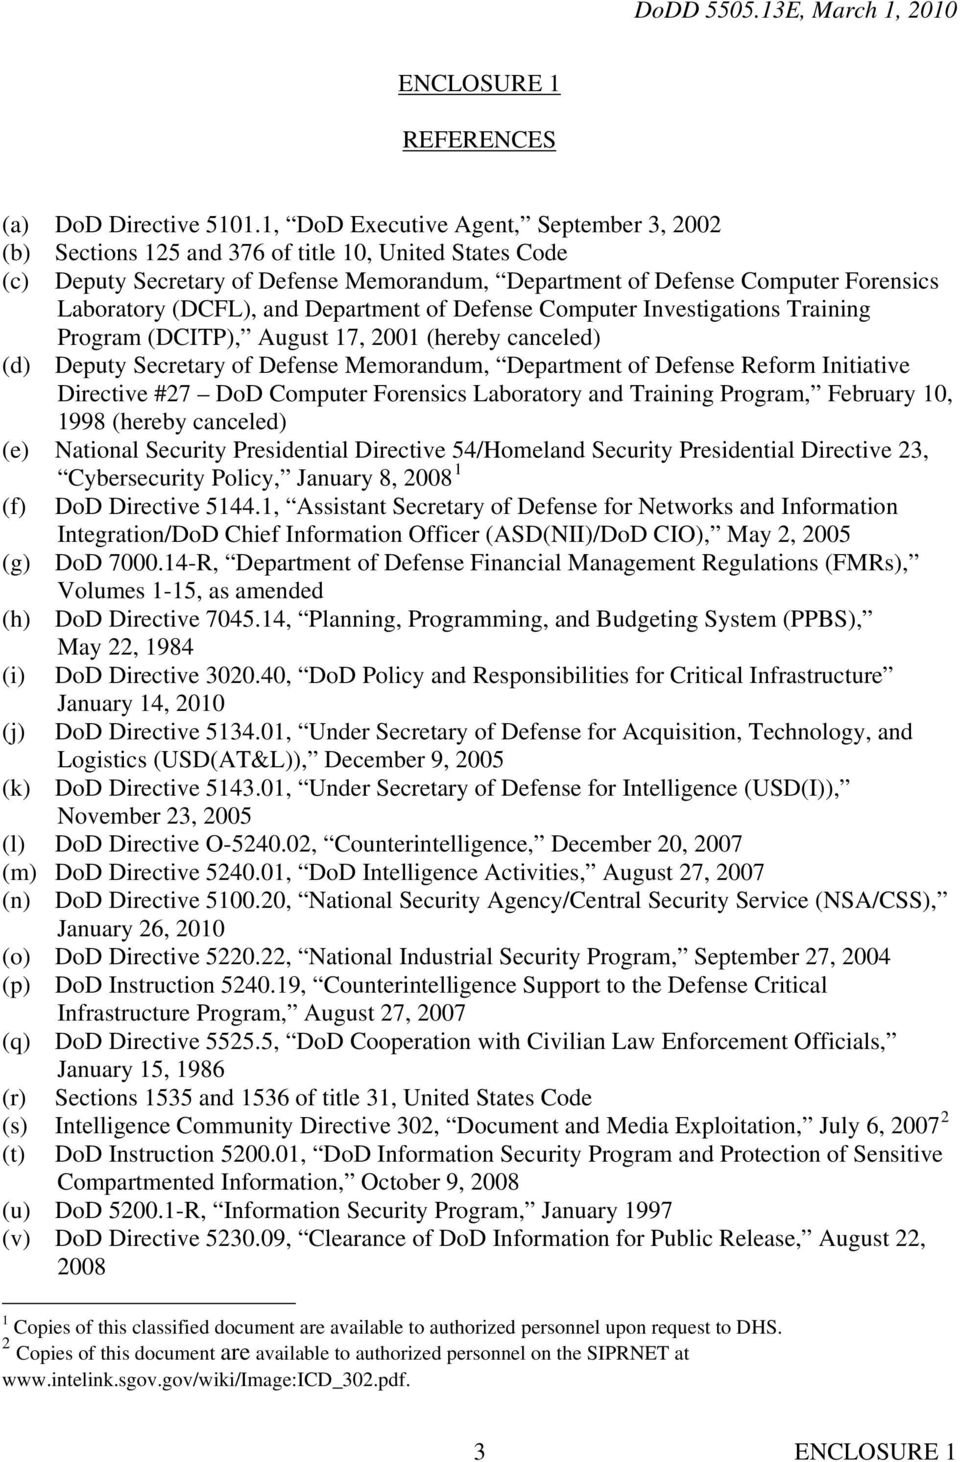 (DCFL), and Department of Defense Computer Investigations Training Program (DCITP), August 17, 2001 (hereby canceled) (d) Deputy Secretary of Defense Memorandum, Department of Defense Reform